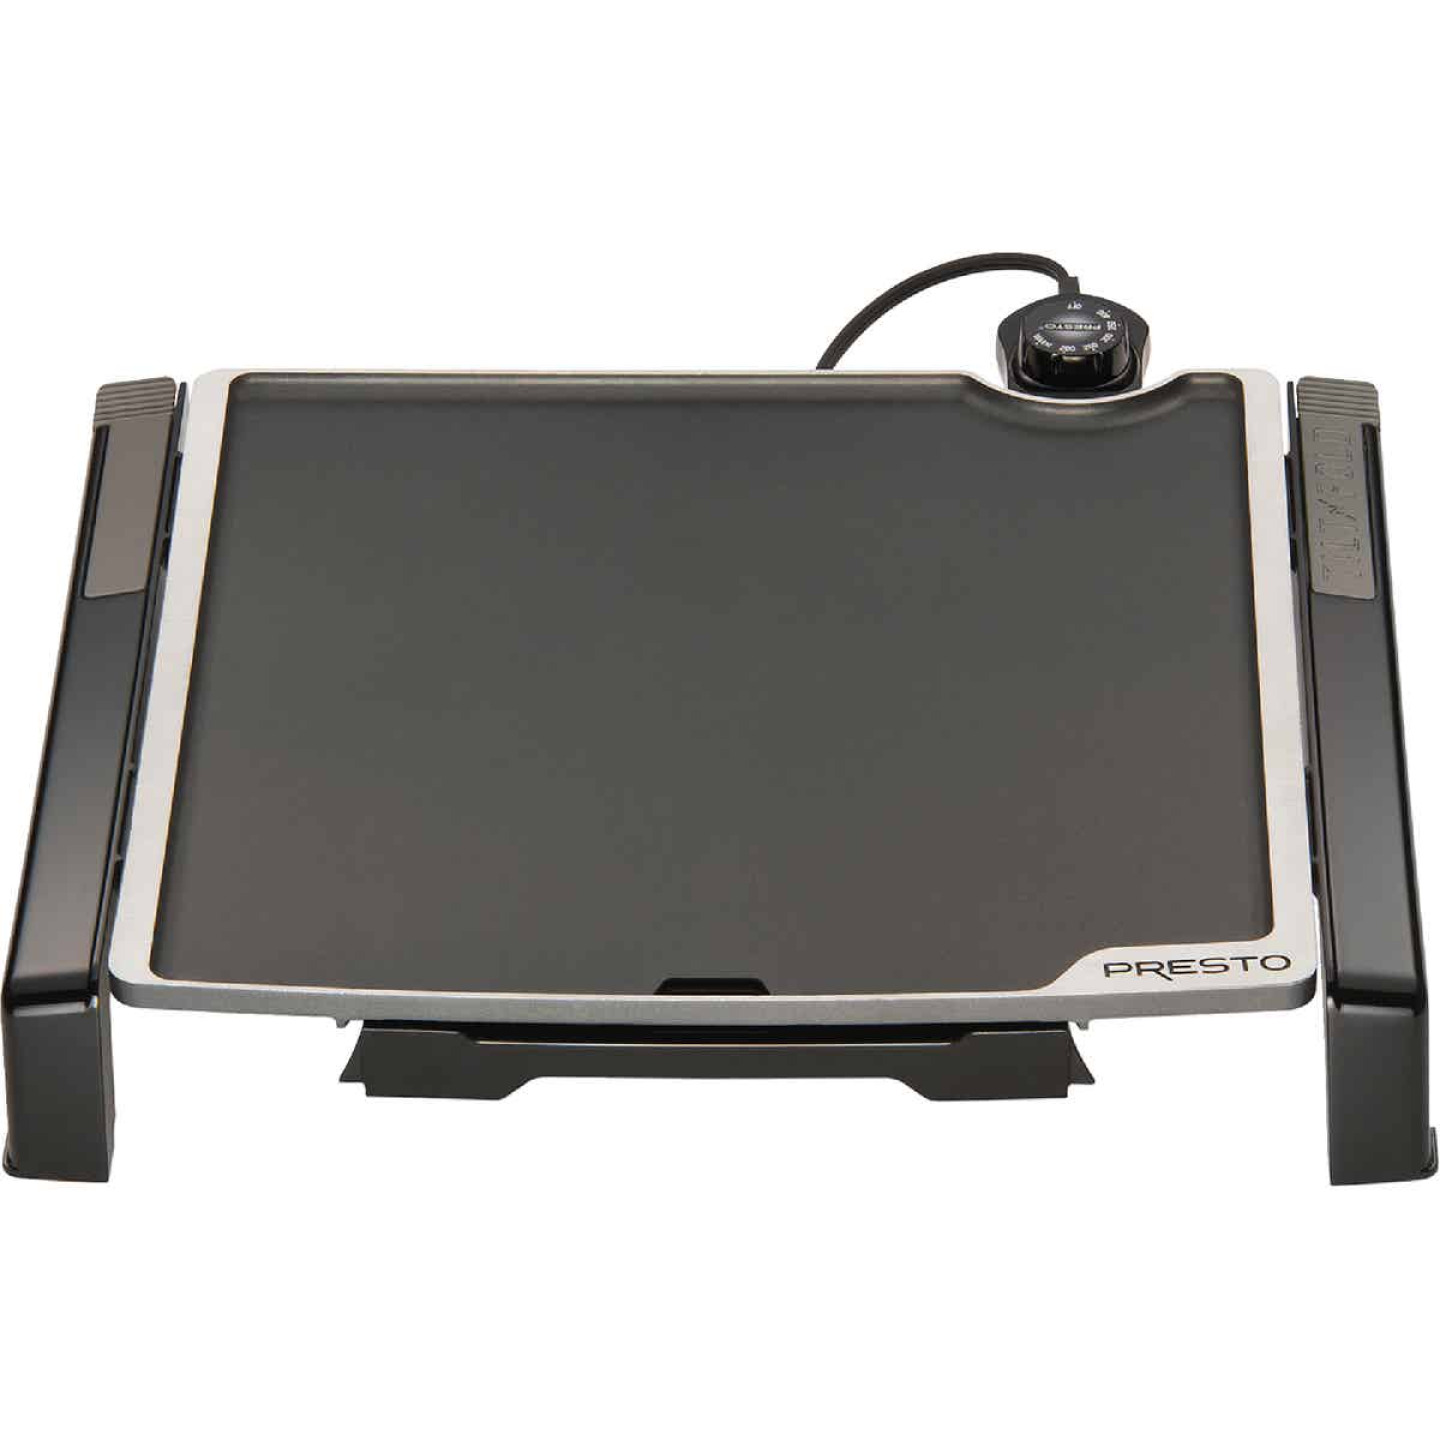 Presto Cool Touch Tilt'nDrain Electric Griddle Image 1